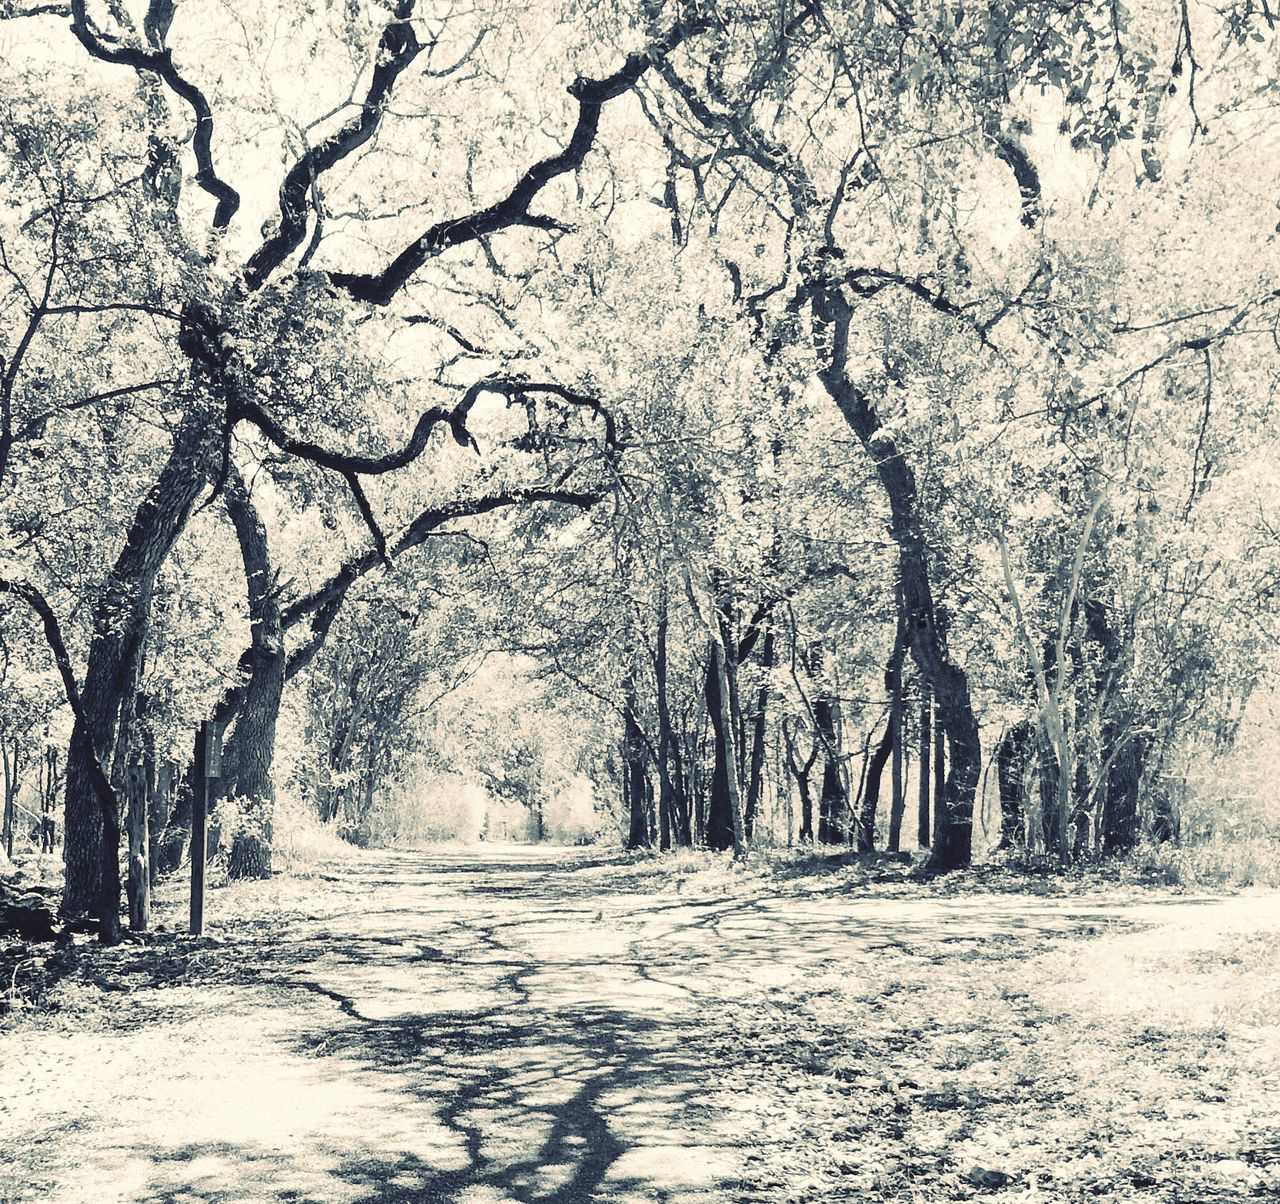 tree, nature, beauty in nature, tree trunk, tranquility, scenics, landscape, tranquil scene, forest, outdoors, bare tree, branch, road, no people, day